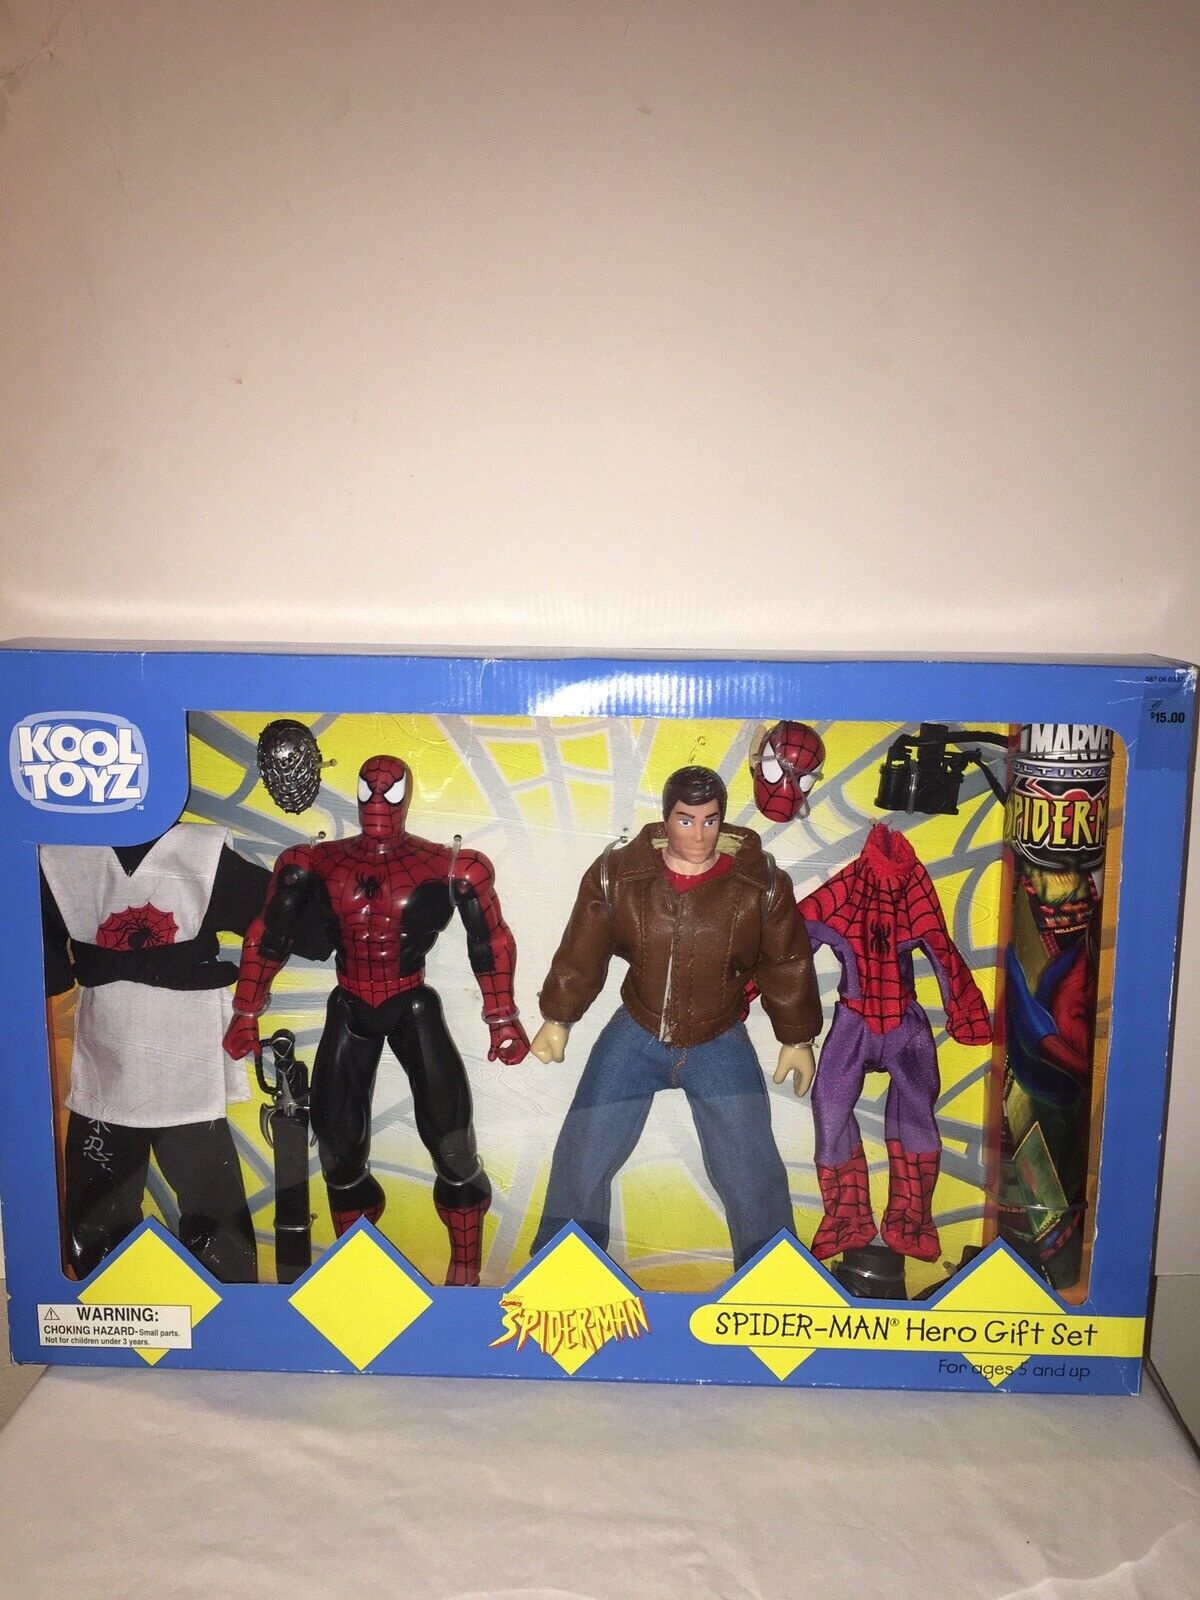 2001 Kool Toyz Target Exclusive Spider-man Hero Gift Set Ultimate Peter Parker